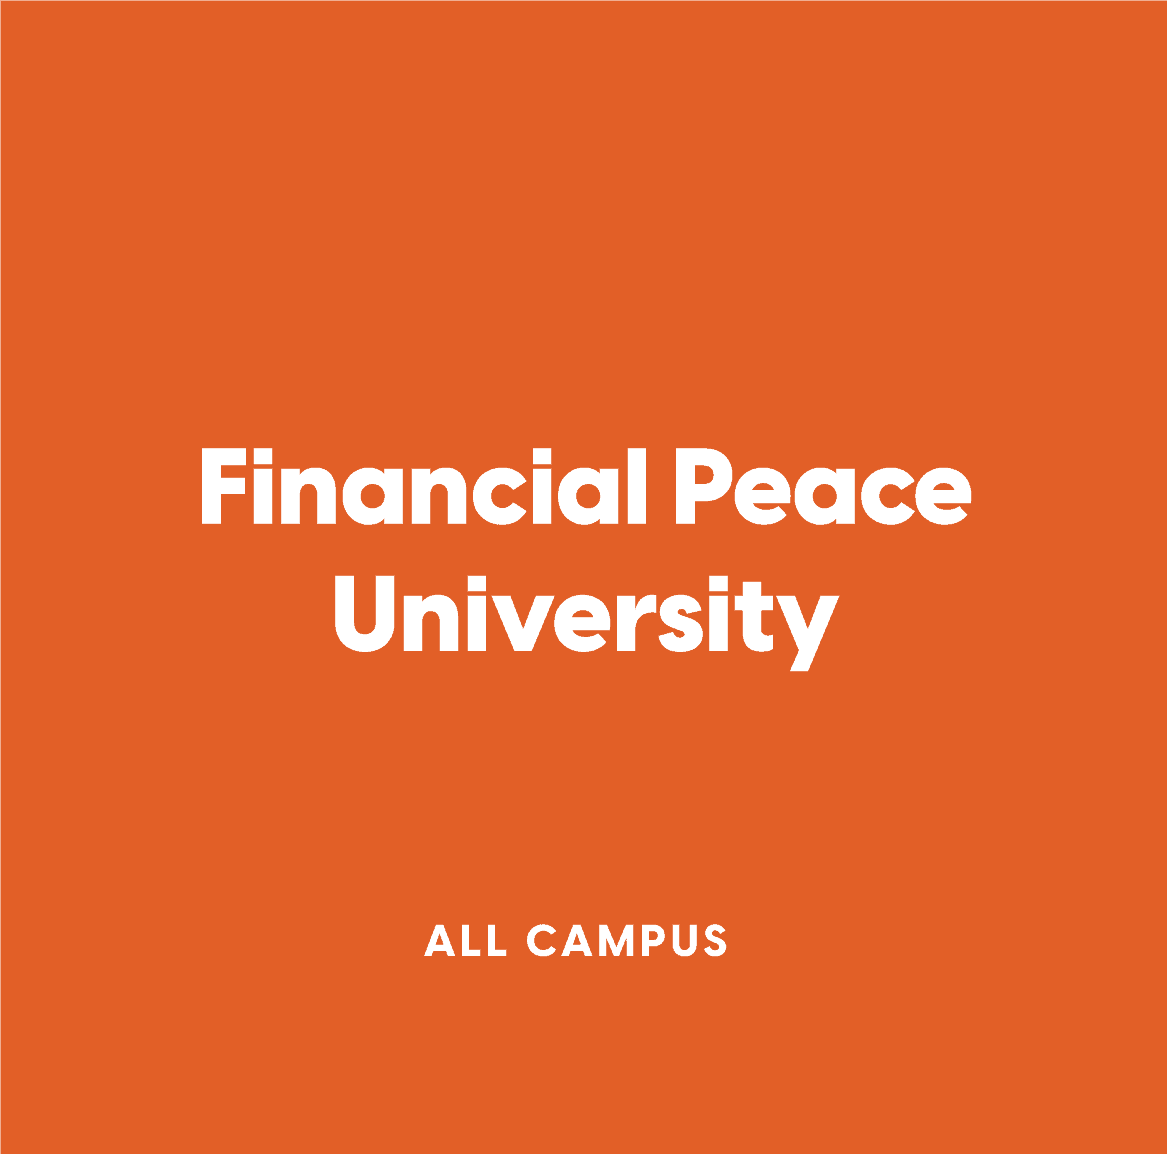 All-Campus Financial Peace University